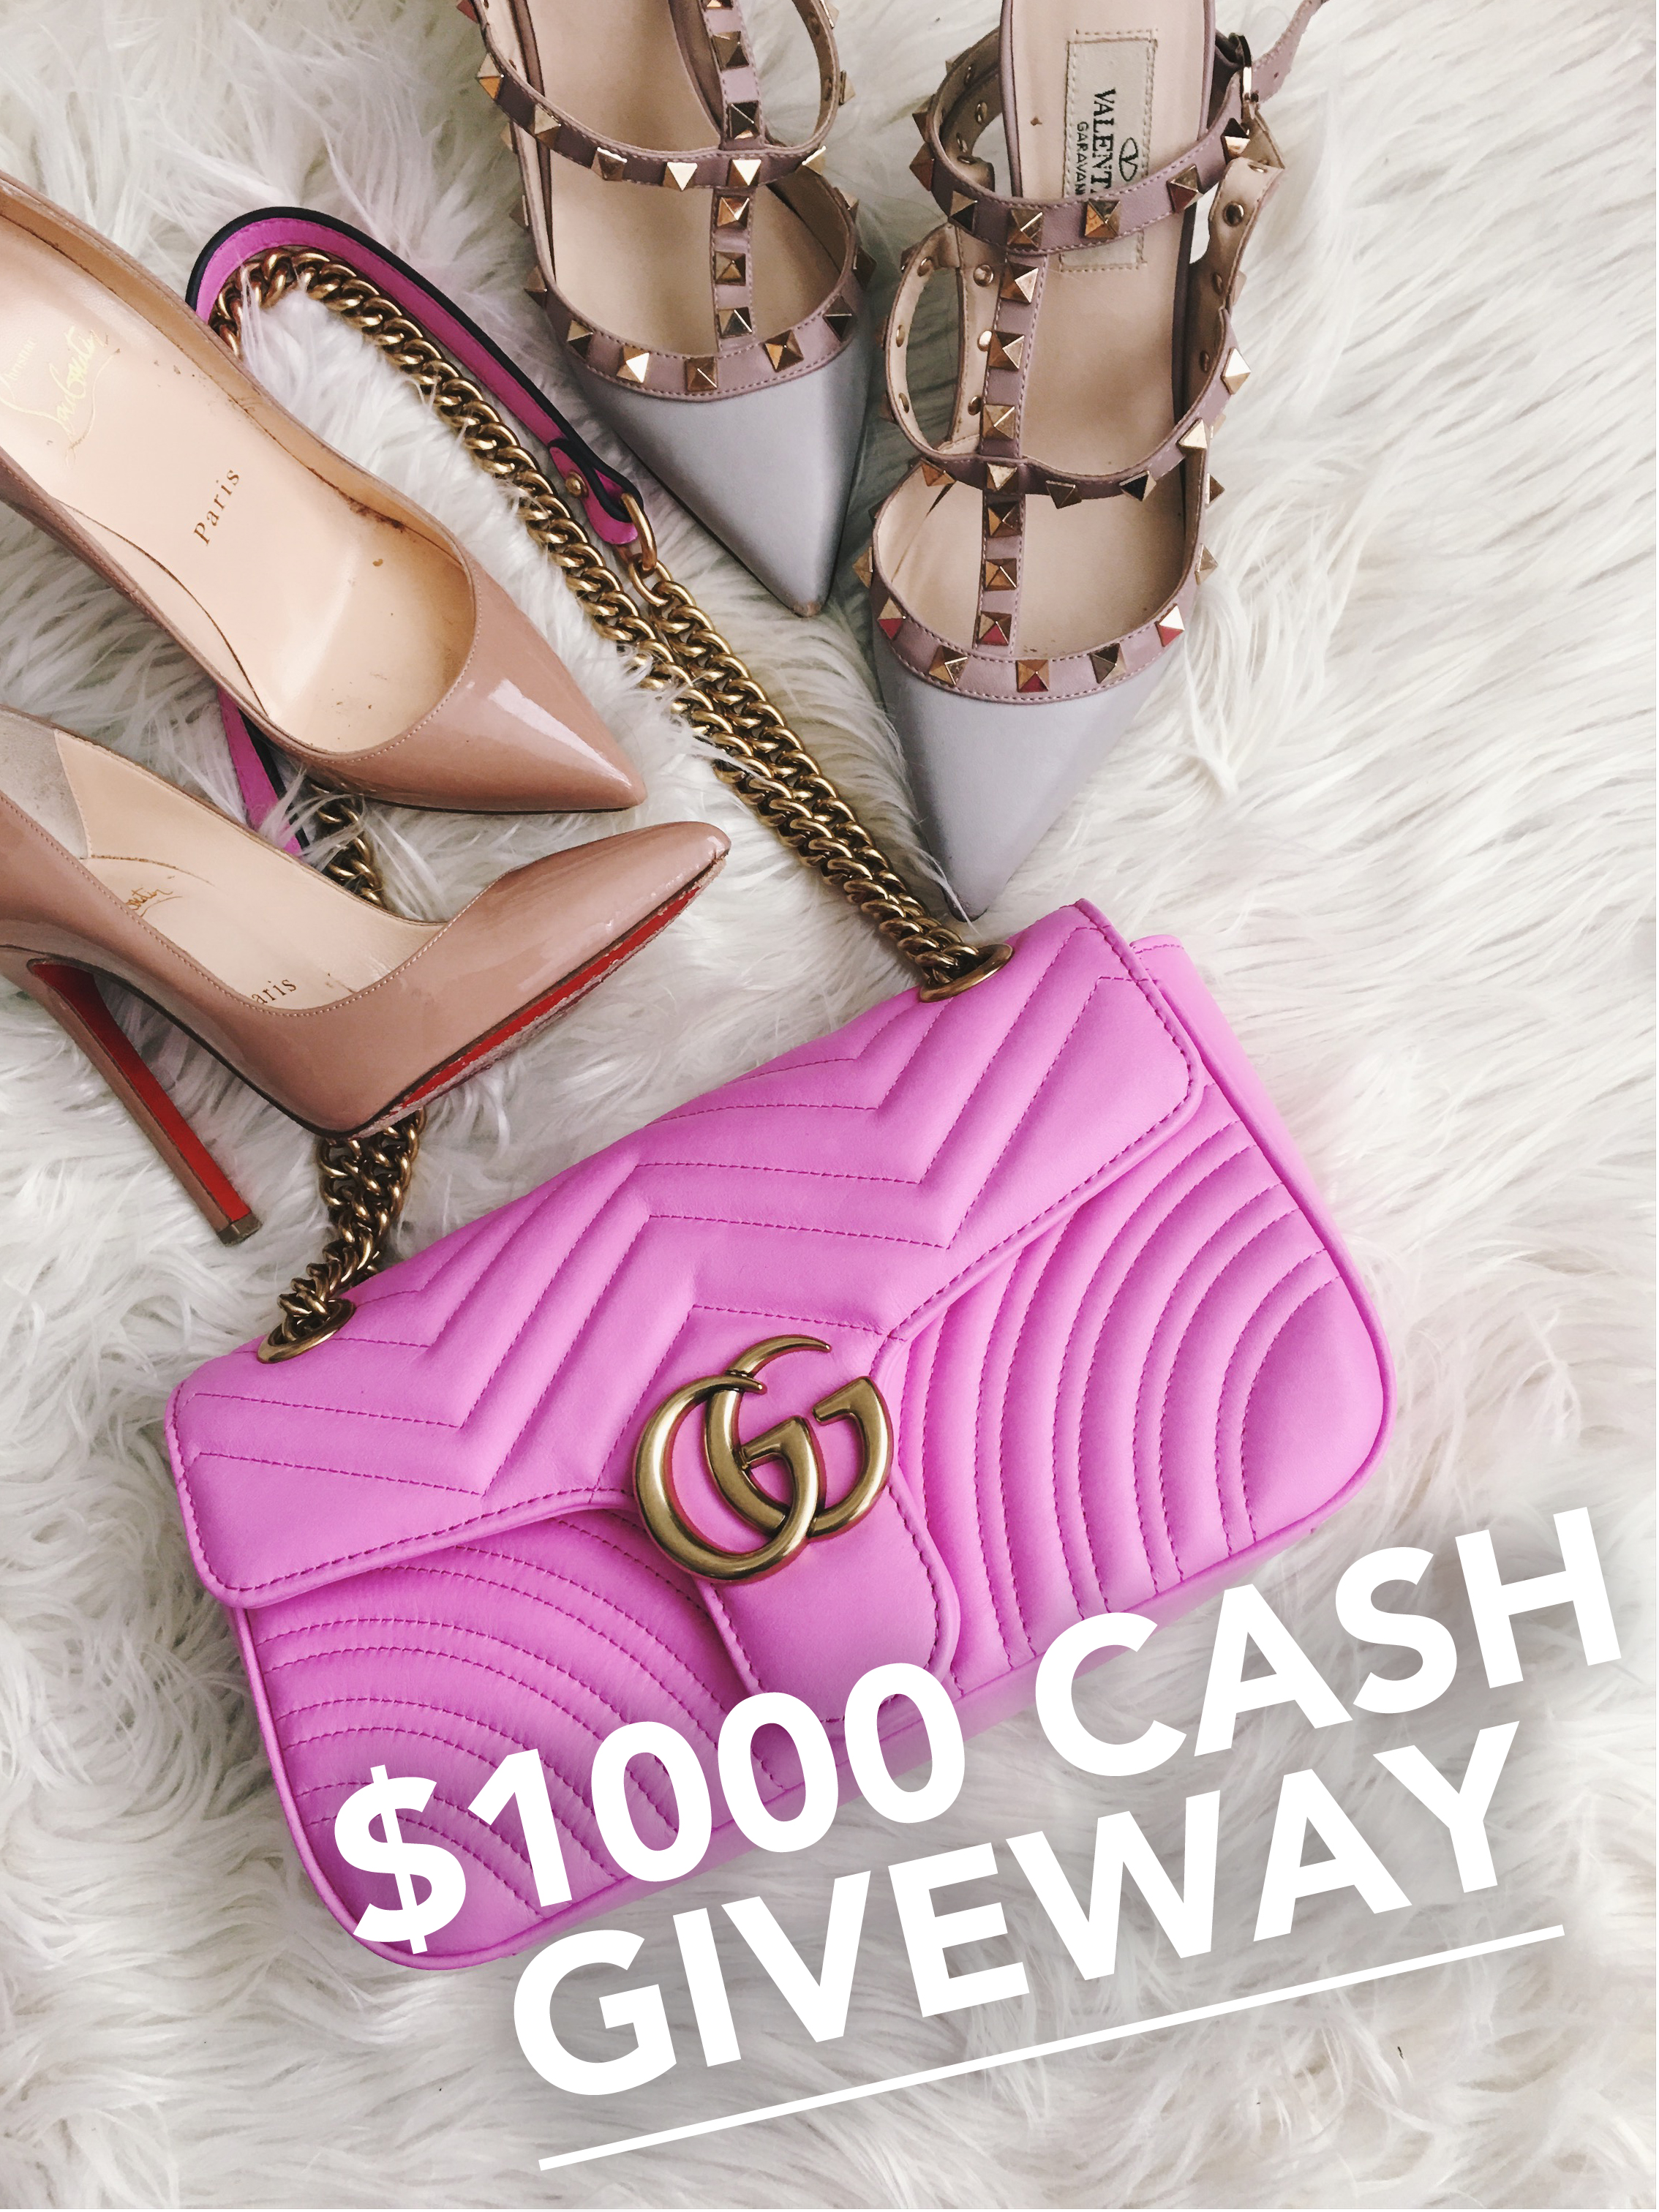 cash giveaway, blogger giveaways, giveaways, T&J Designs, blogger networking